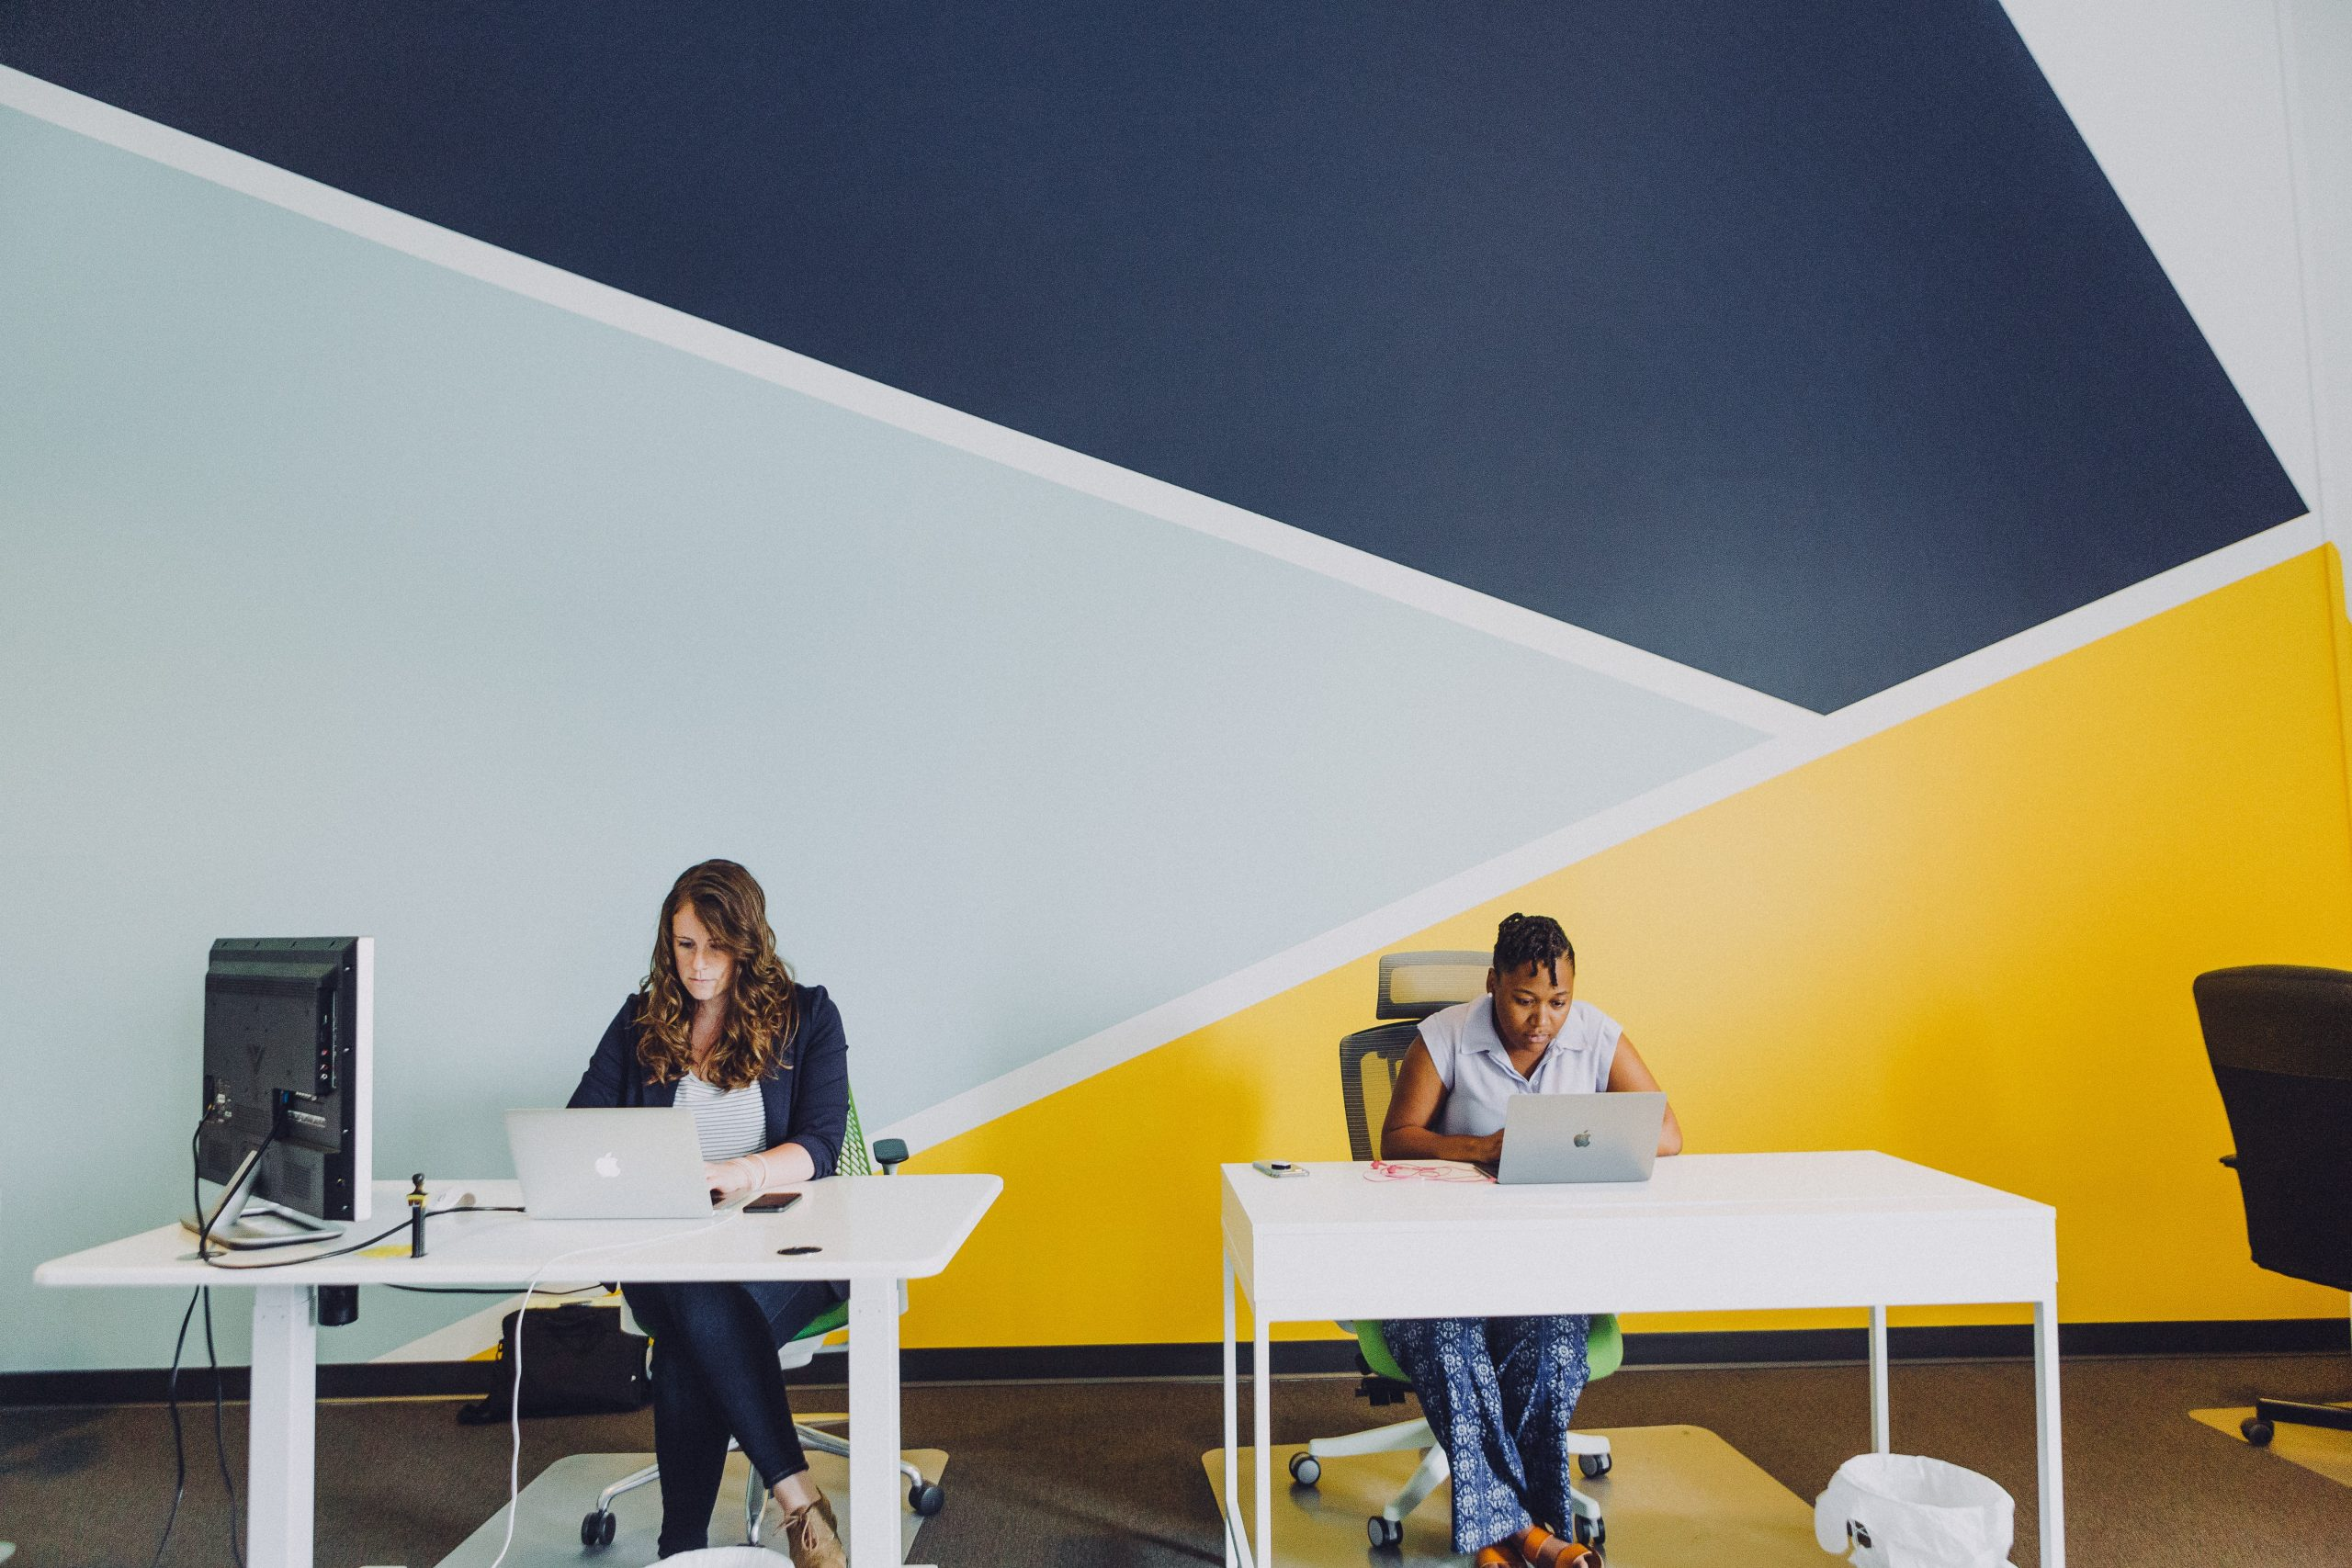 3 Ways your Marketing and Business Development Teams Can Work Together to Accelerate Growth